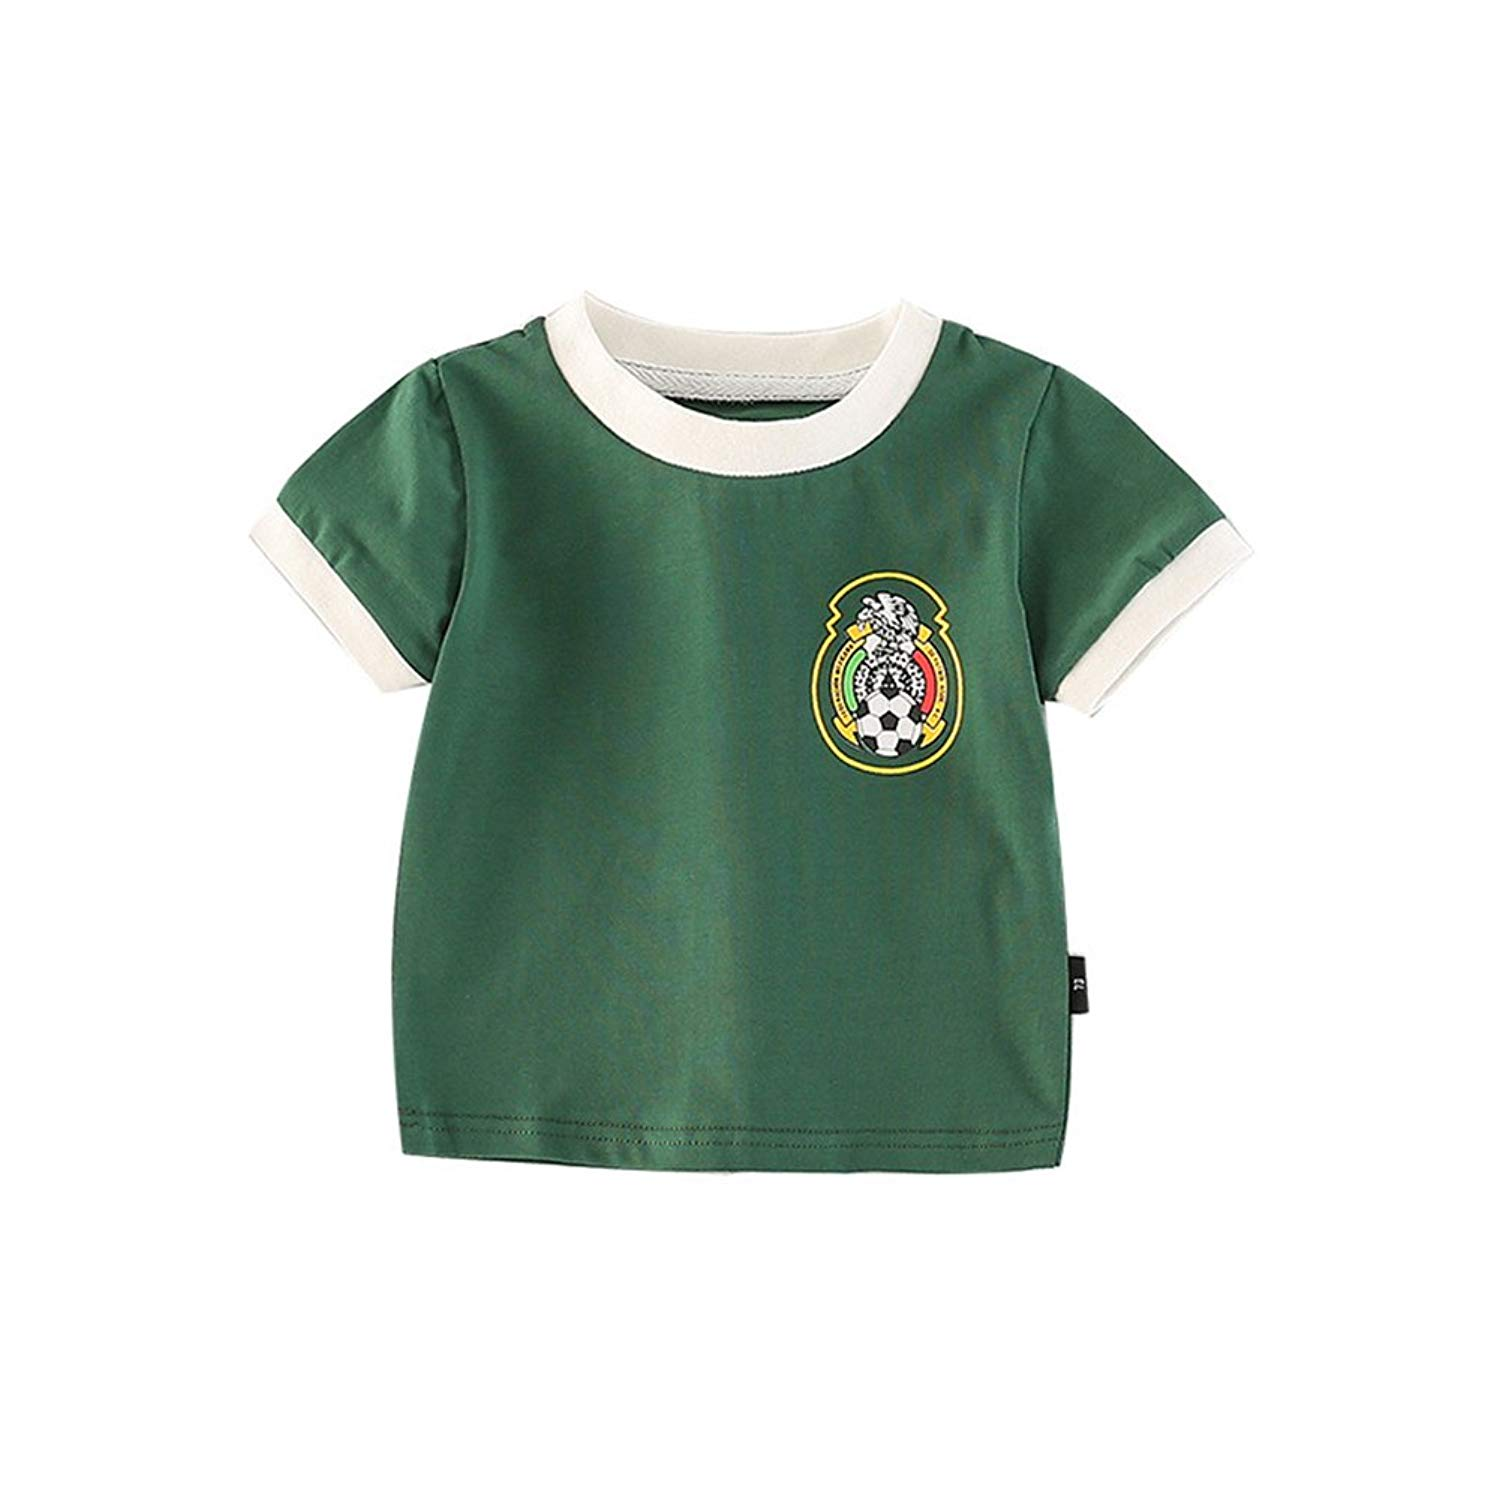 Fairy Baby Toddler Baby Boys Girls World Cup Football Soccer Jersey Shirts Summer Outfit Clothes